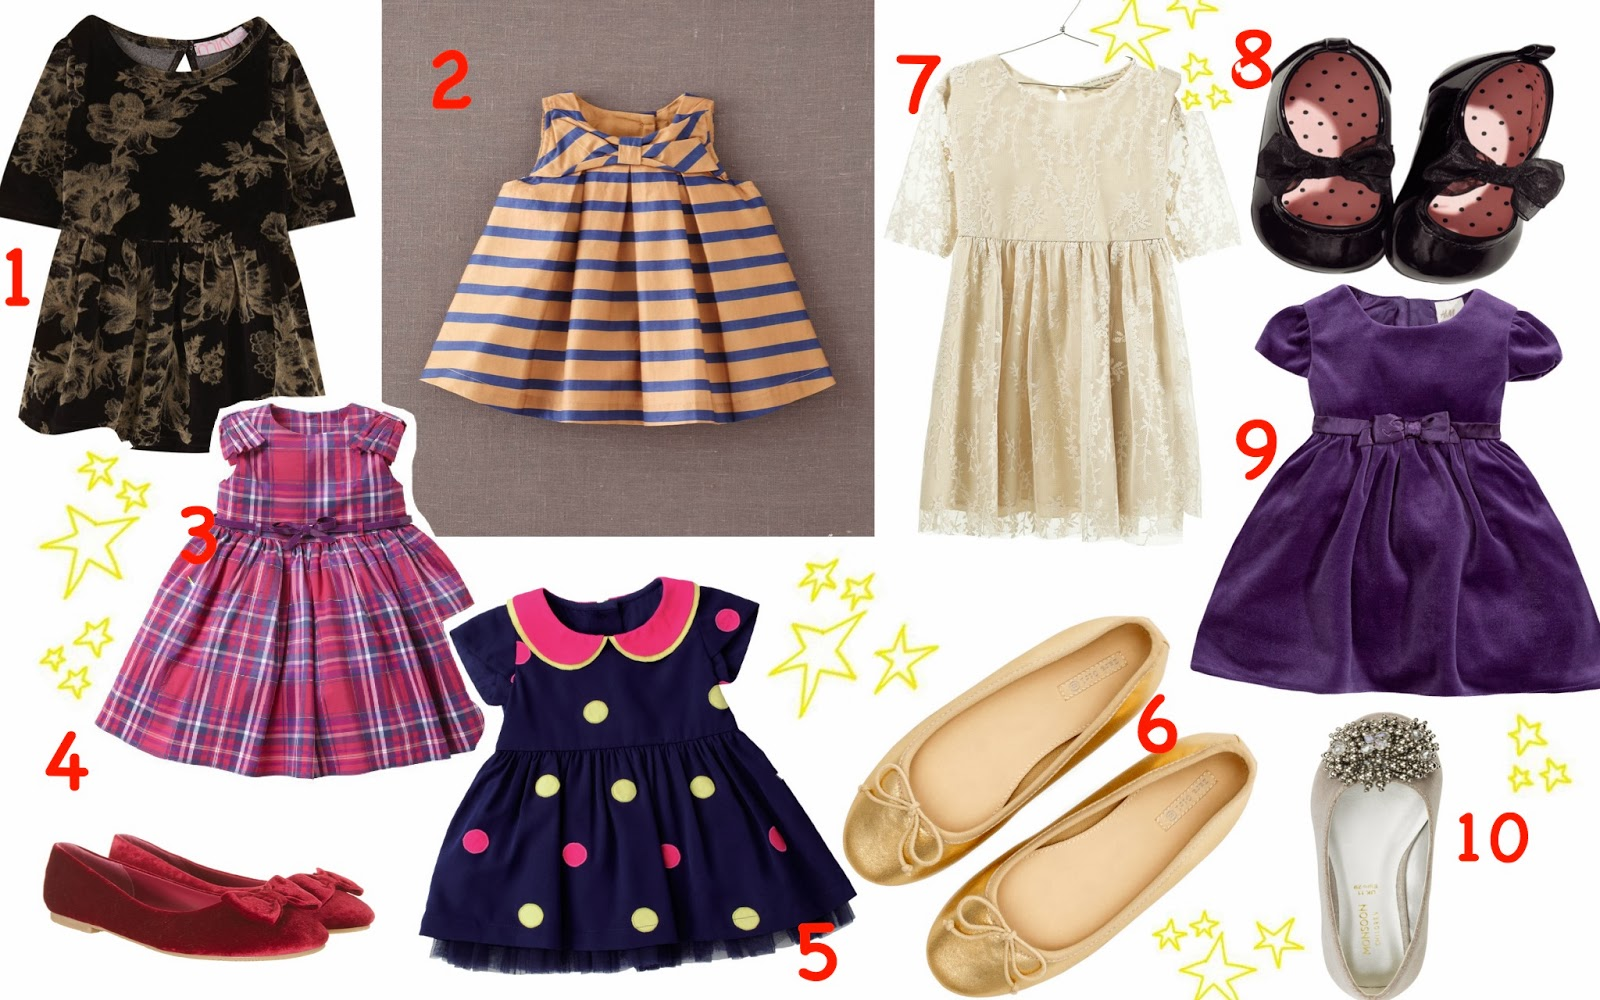 mamasVIB | V. I. BUYS: Stylish party outfits for little girls for £25 and under, V. I. BABY | Party outfits for little girls | party dress | ballerina shoes | girls party wear | christmas dressing